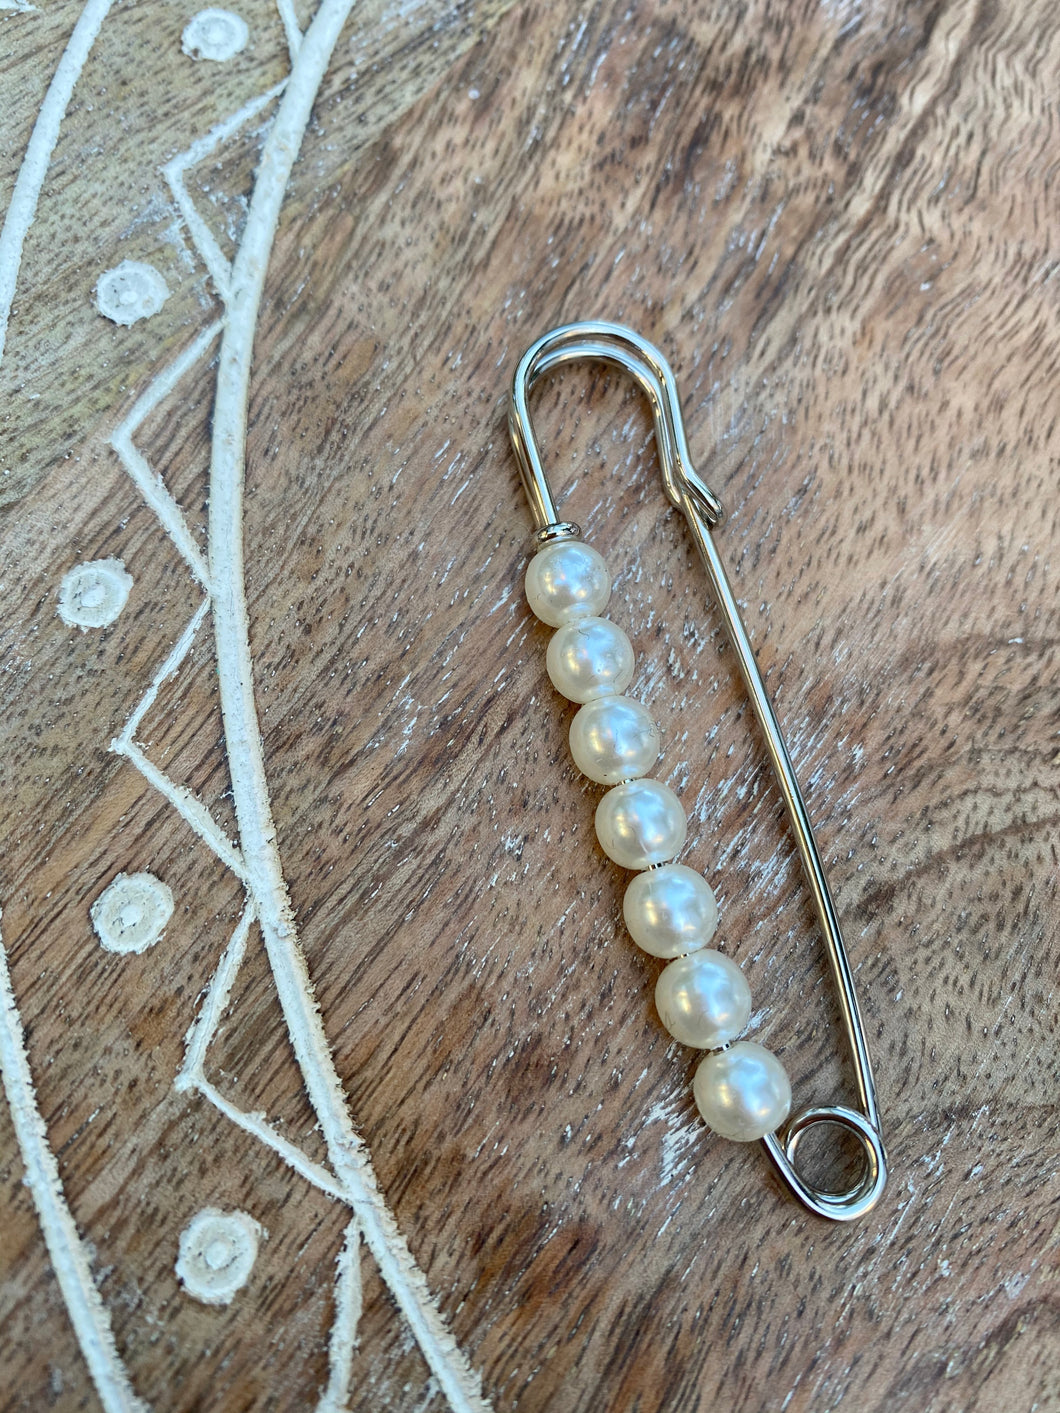 Glam Pearl Safety Pins: Gold or Silver